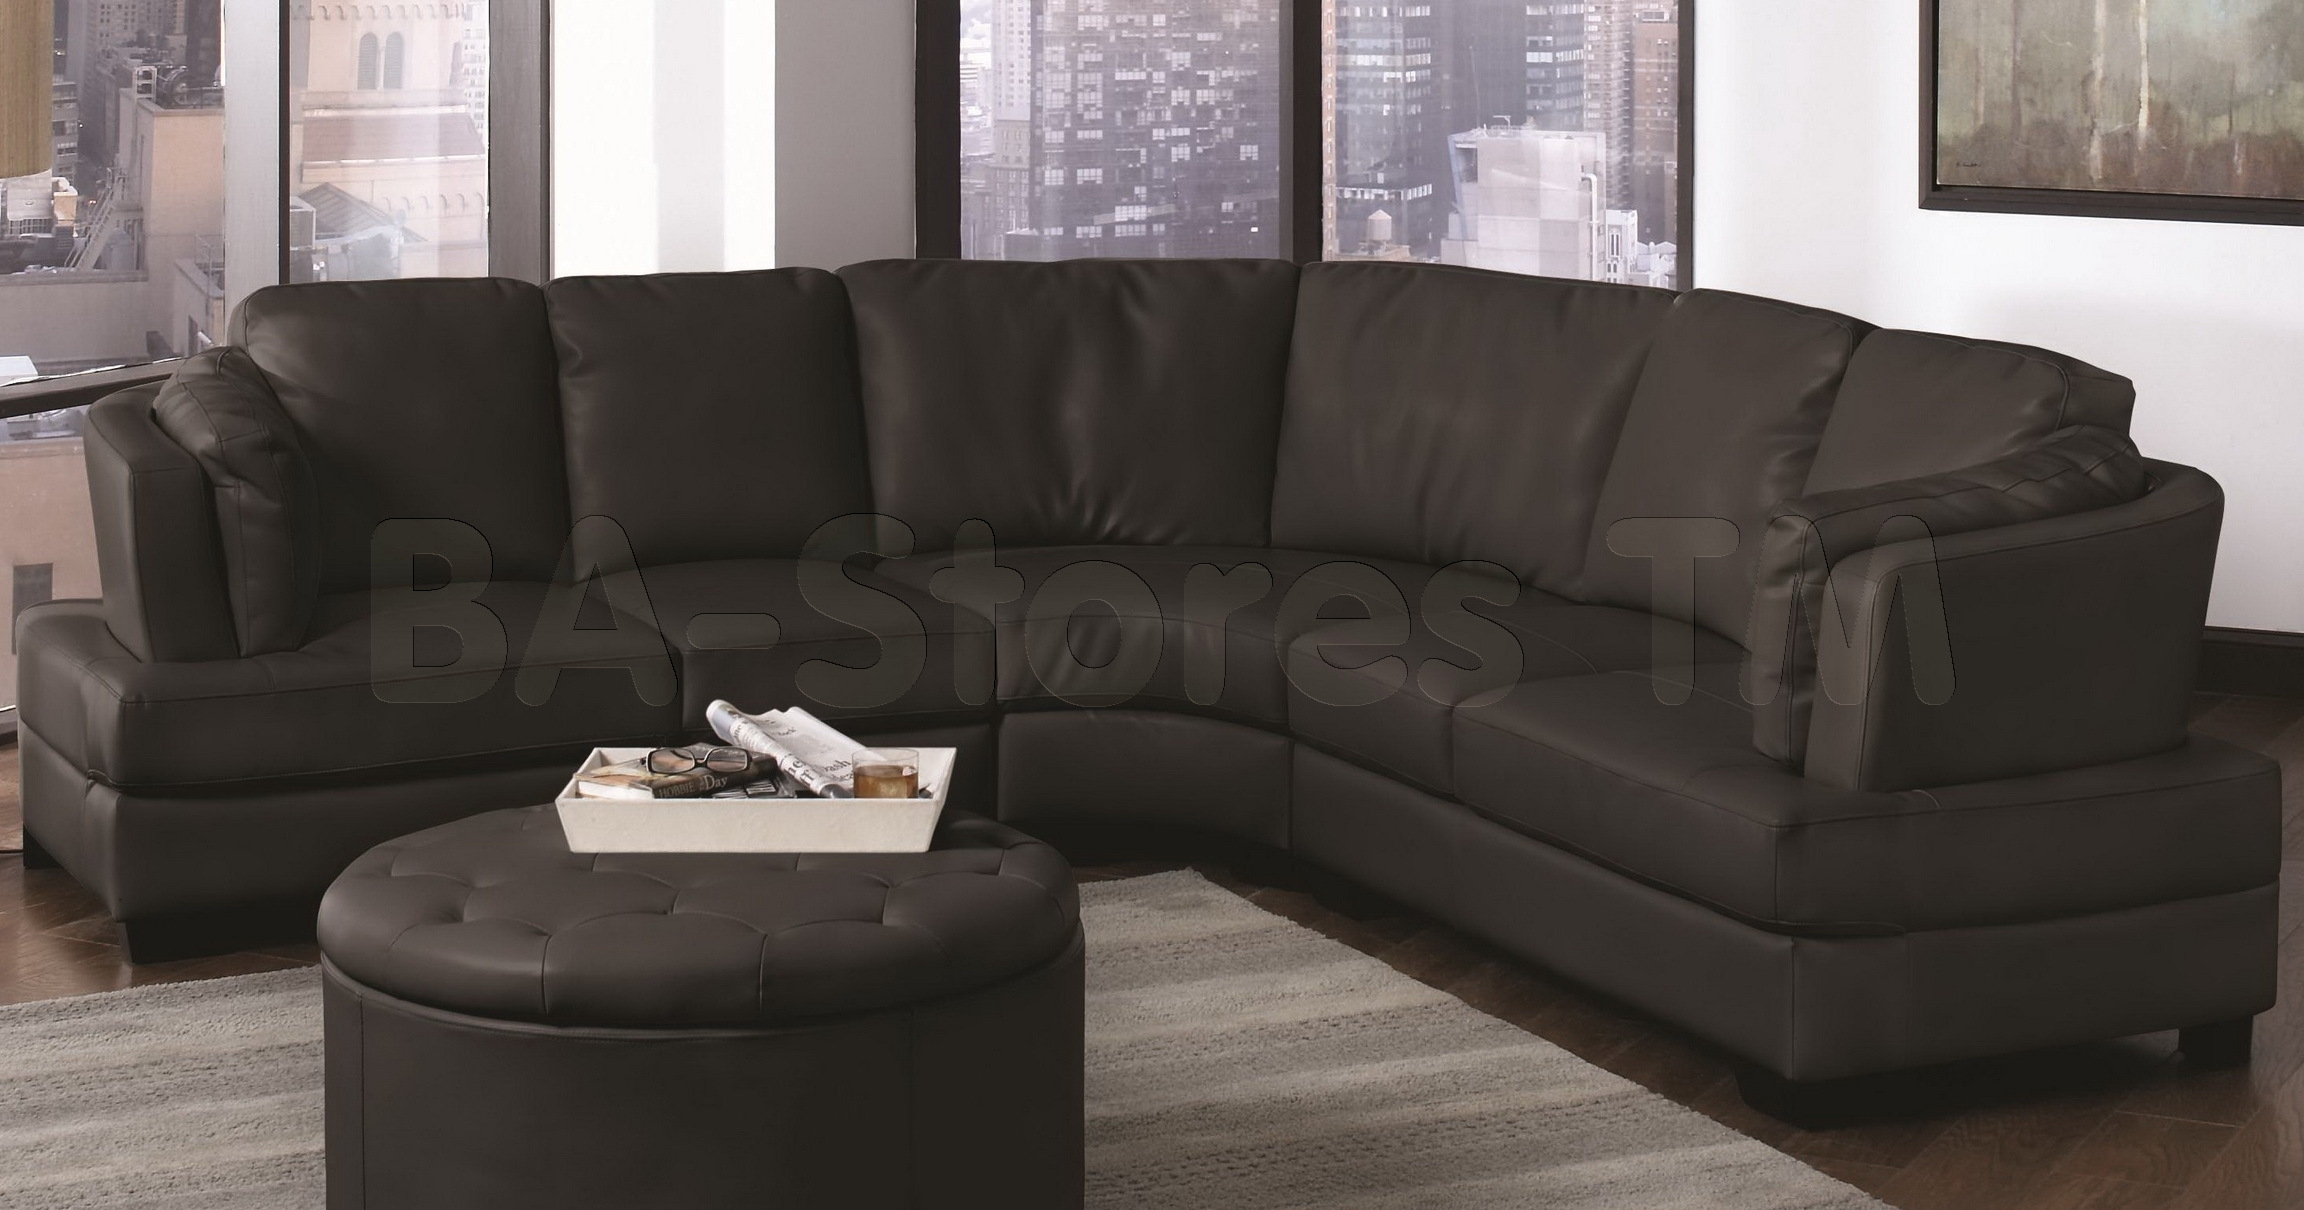 Trend Circular Sectional Sofa 57 With Additional Living Room Sofa in Circular Sectional Sofas (Image 10 of 10)